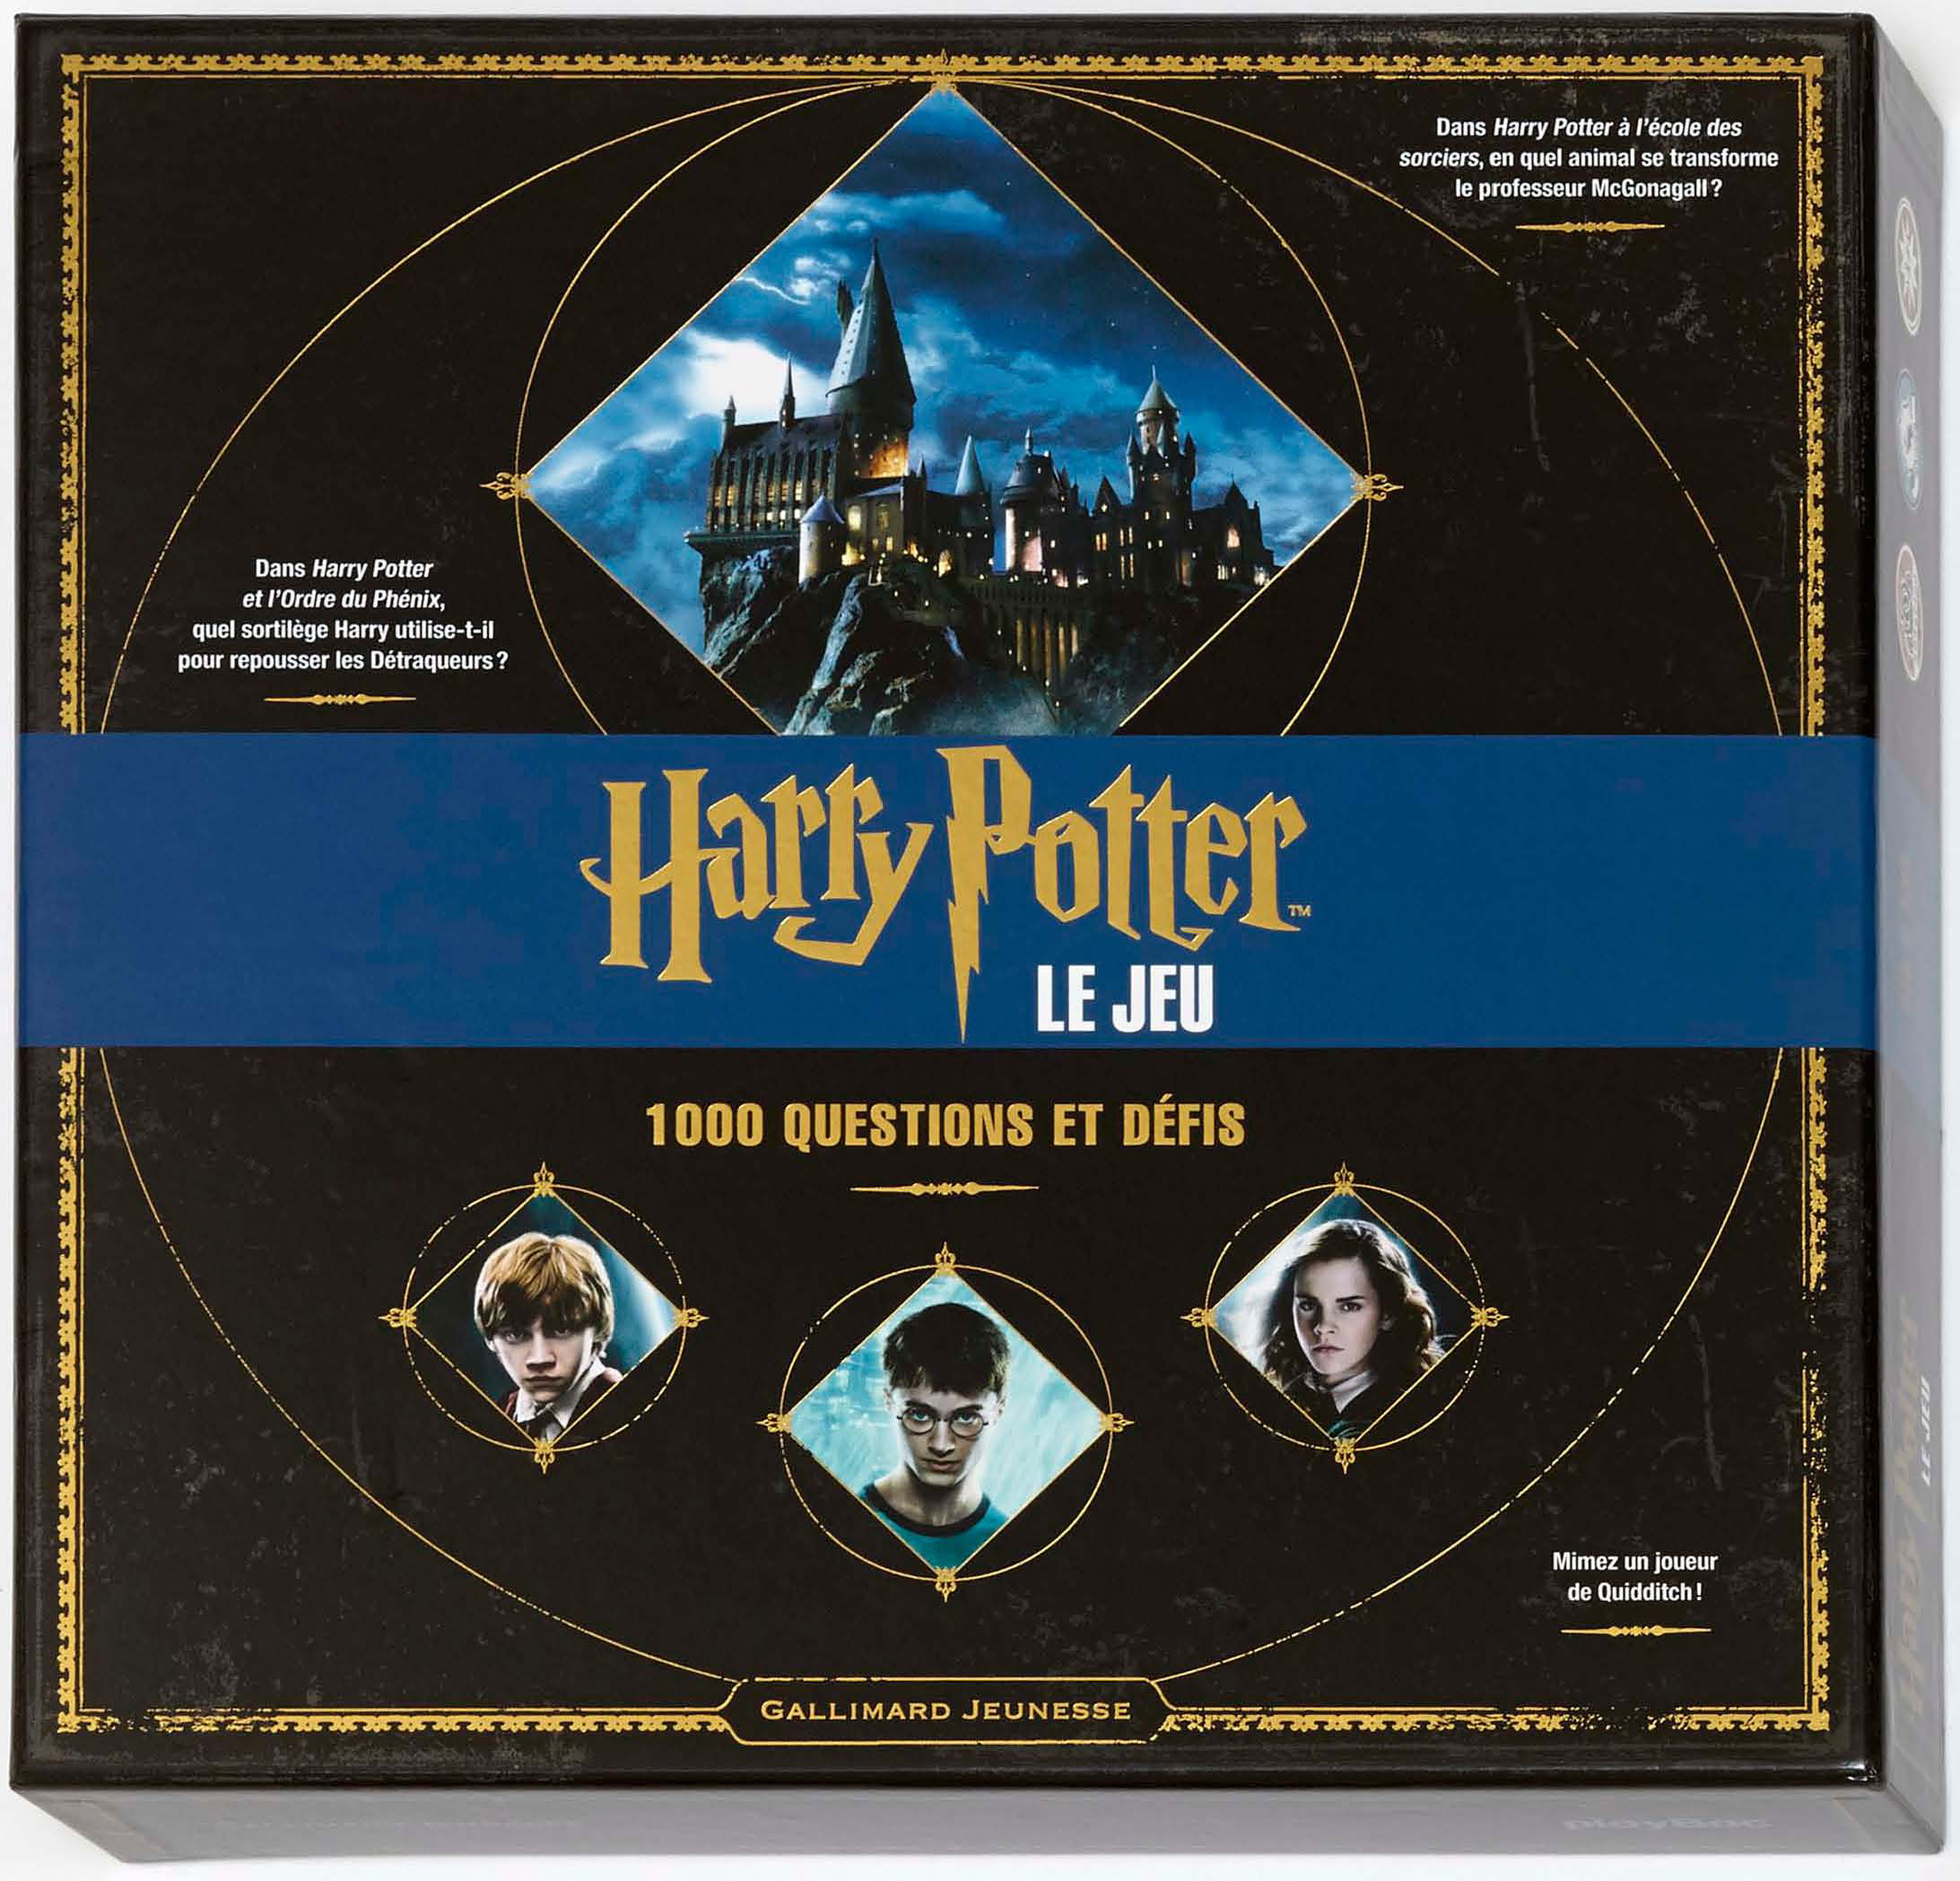 HARRY POTTER : LE JEU - 1 000 QUESTIONS ET DEFIS